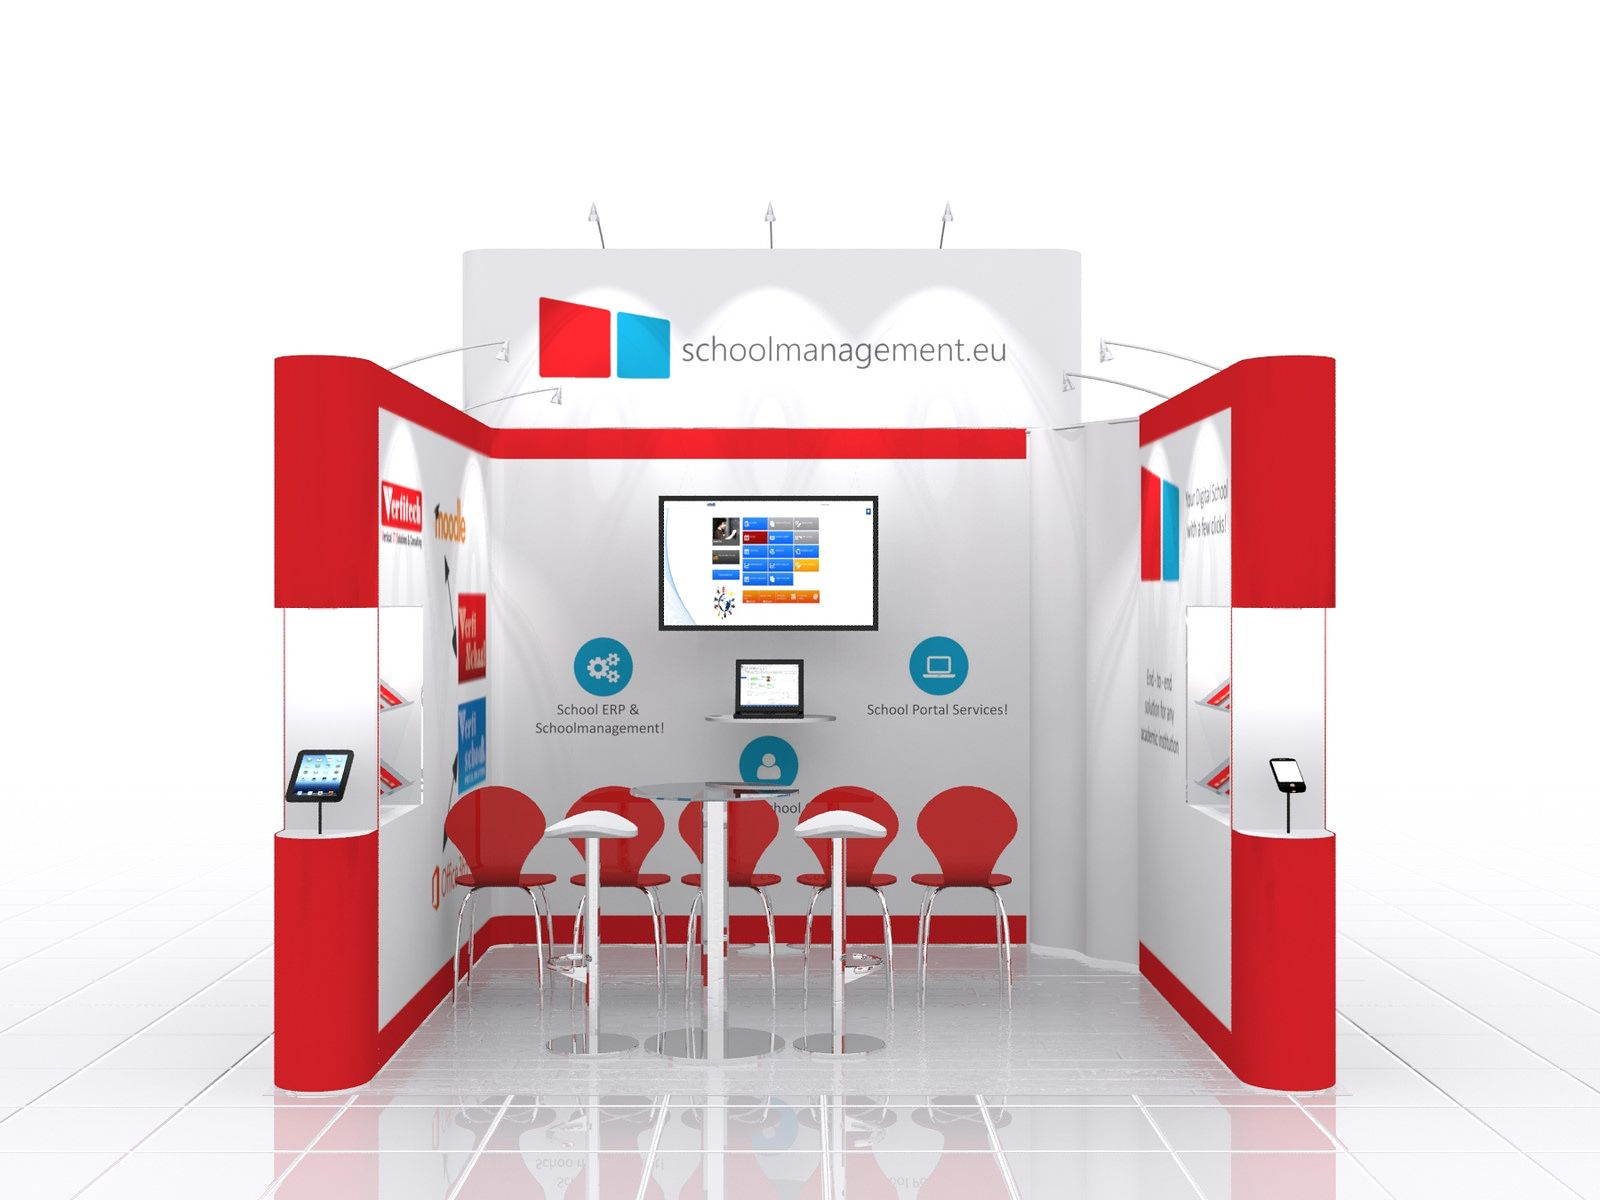 School Exhibition Stall Design : Exhibition stand design for school management small space big